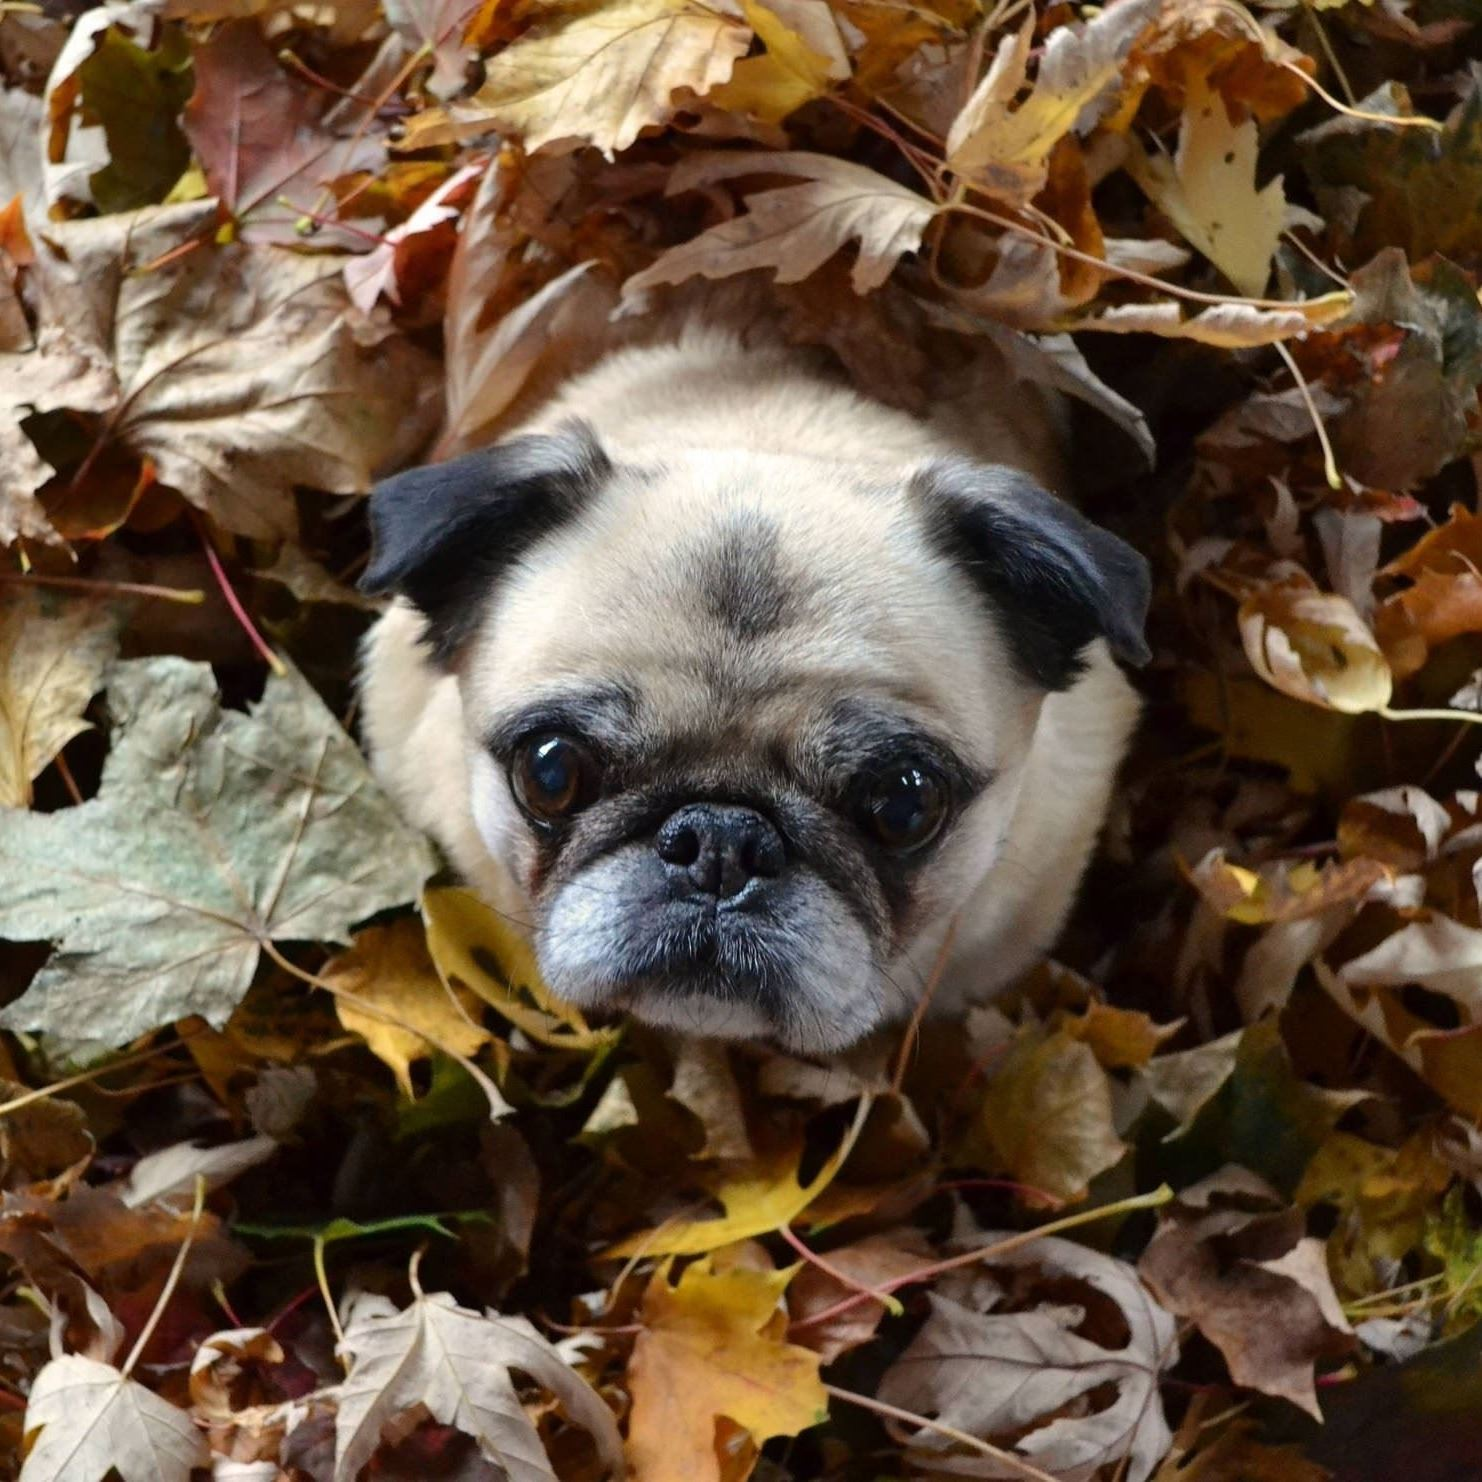 Dog in a pile of leaves